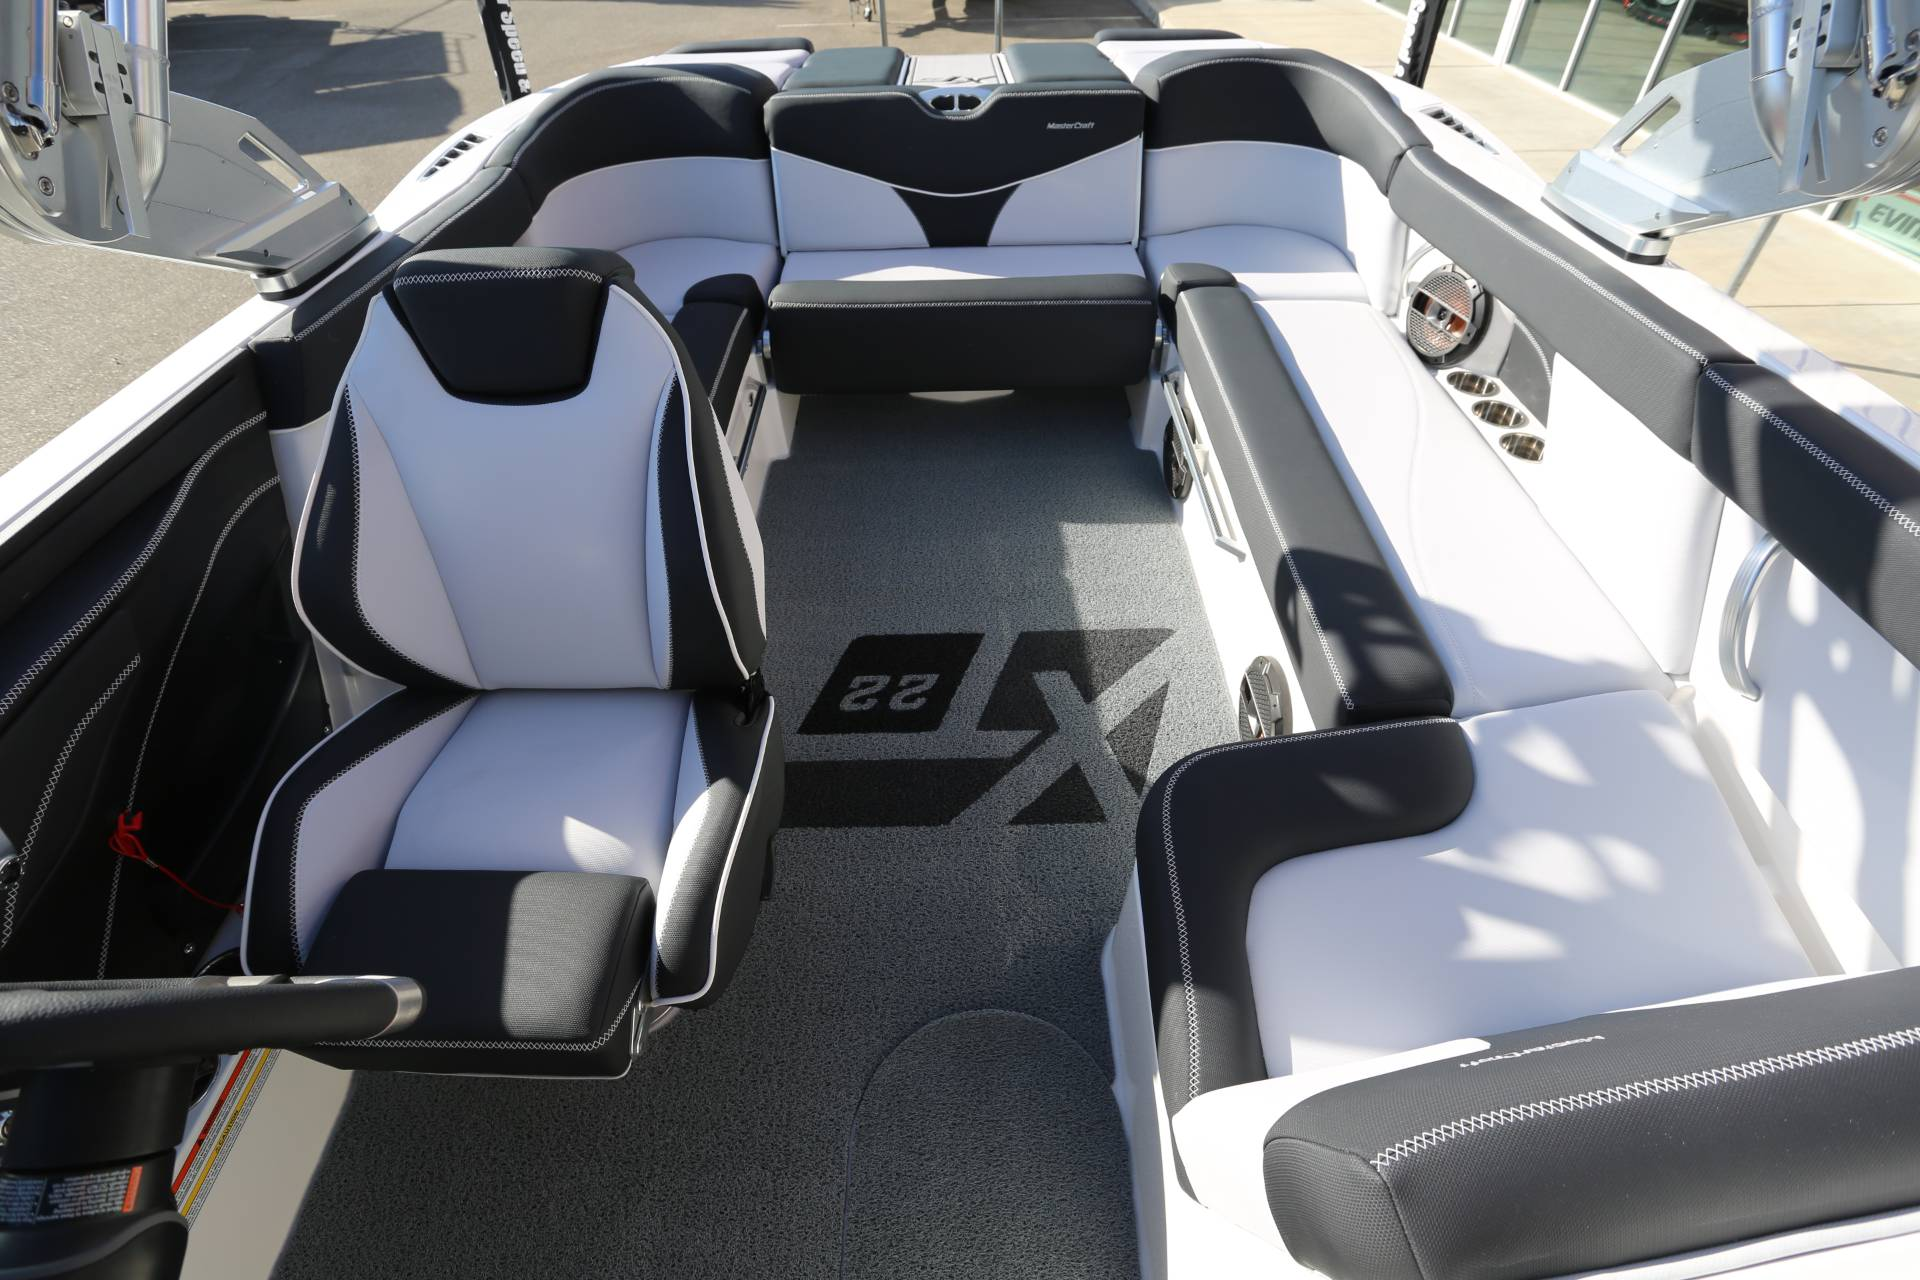 2021 Mastercraft XT22 in Madera, California - Photo 26